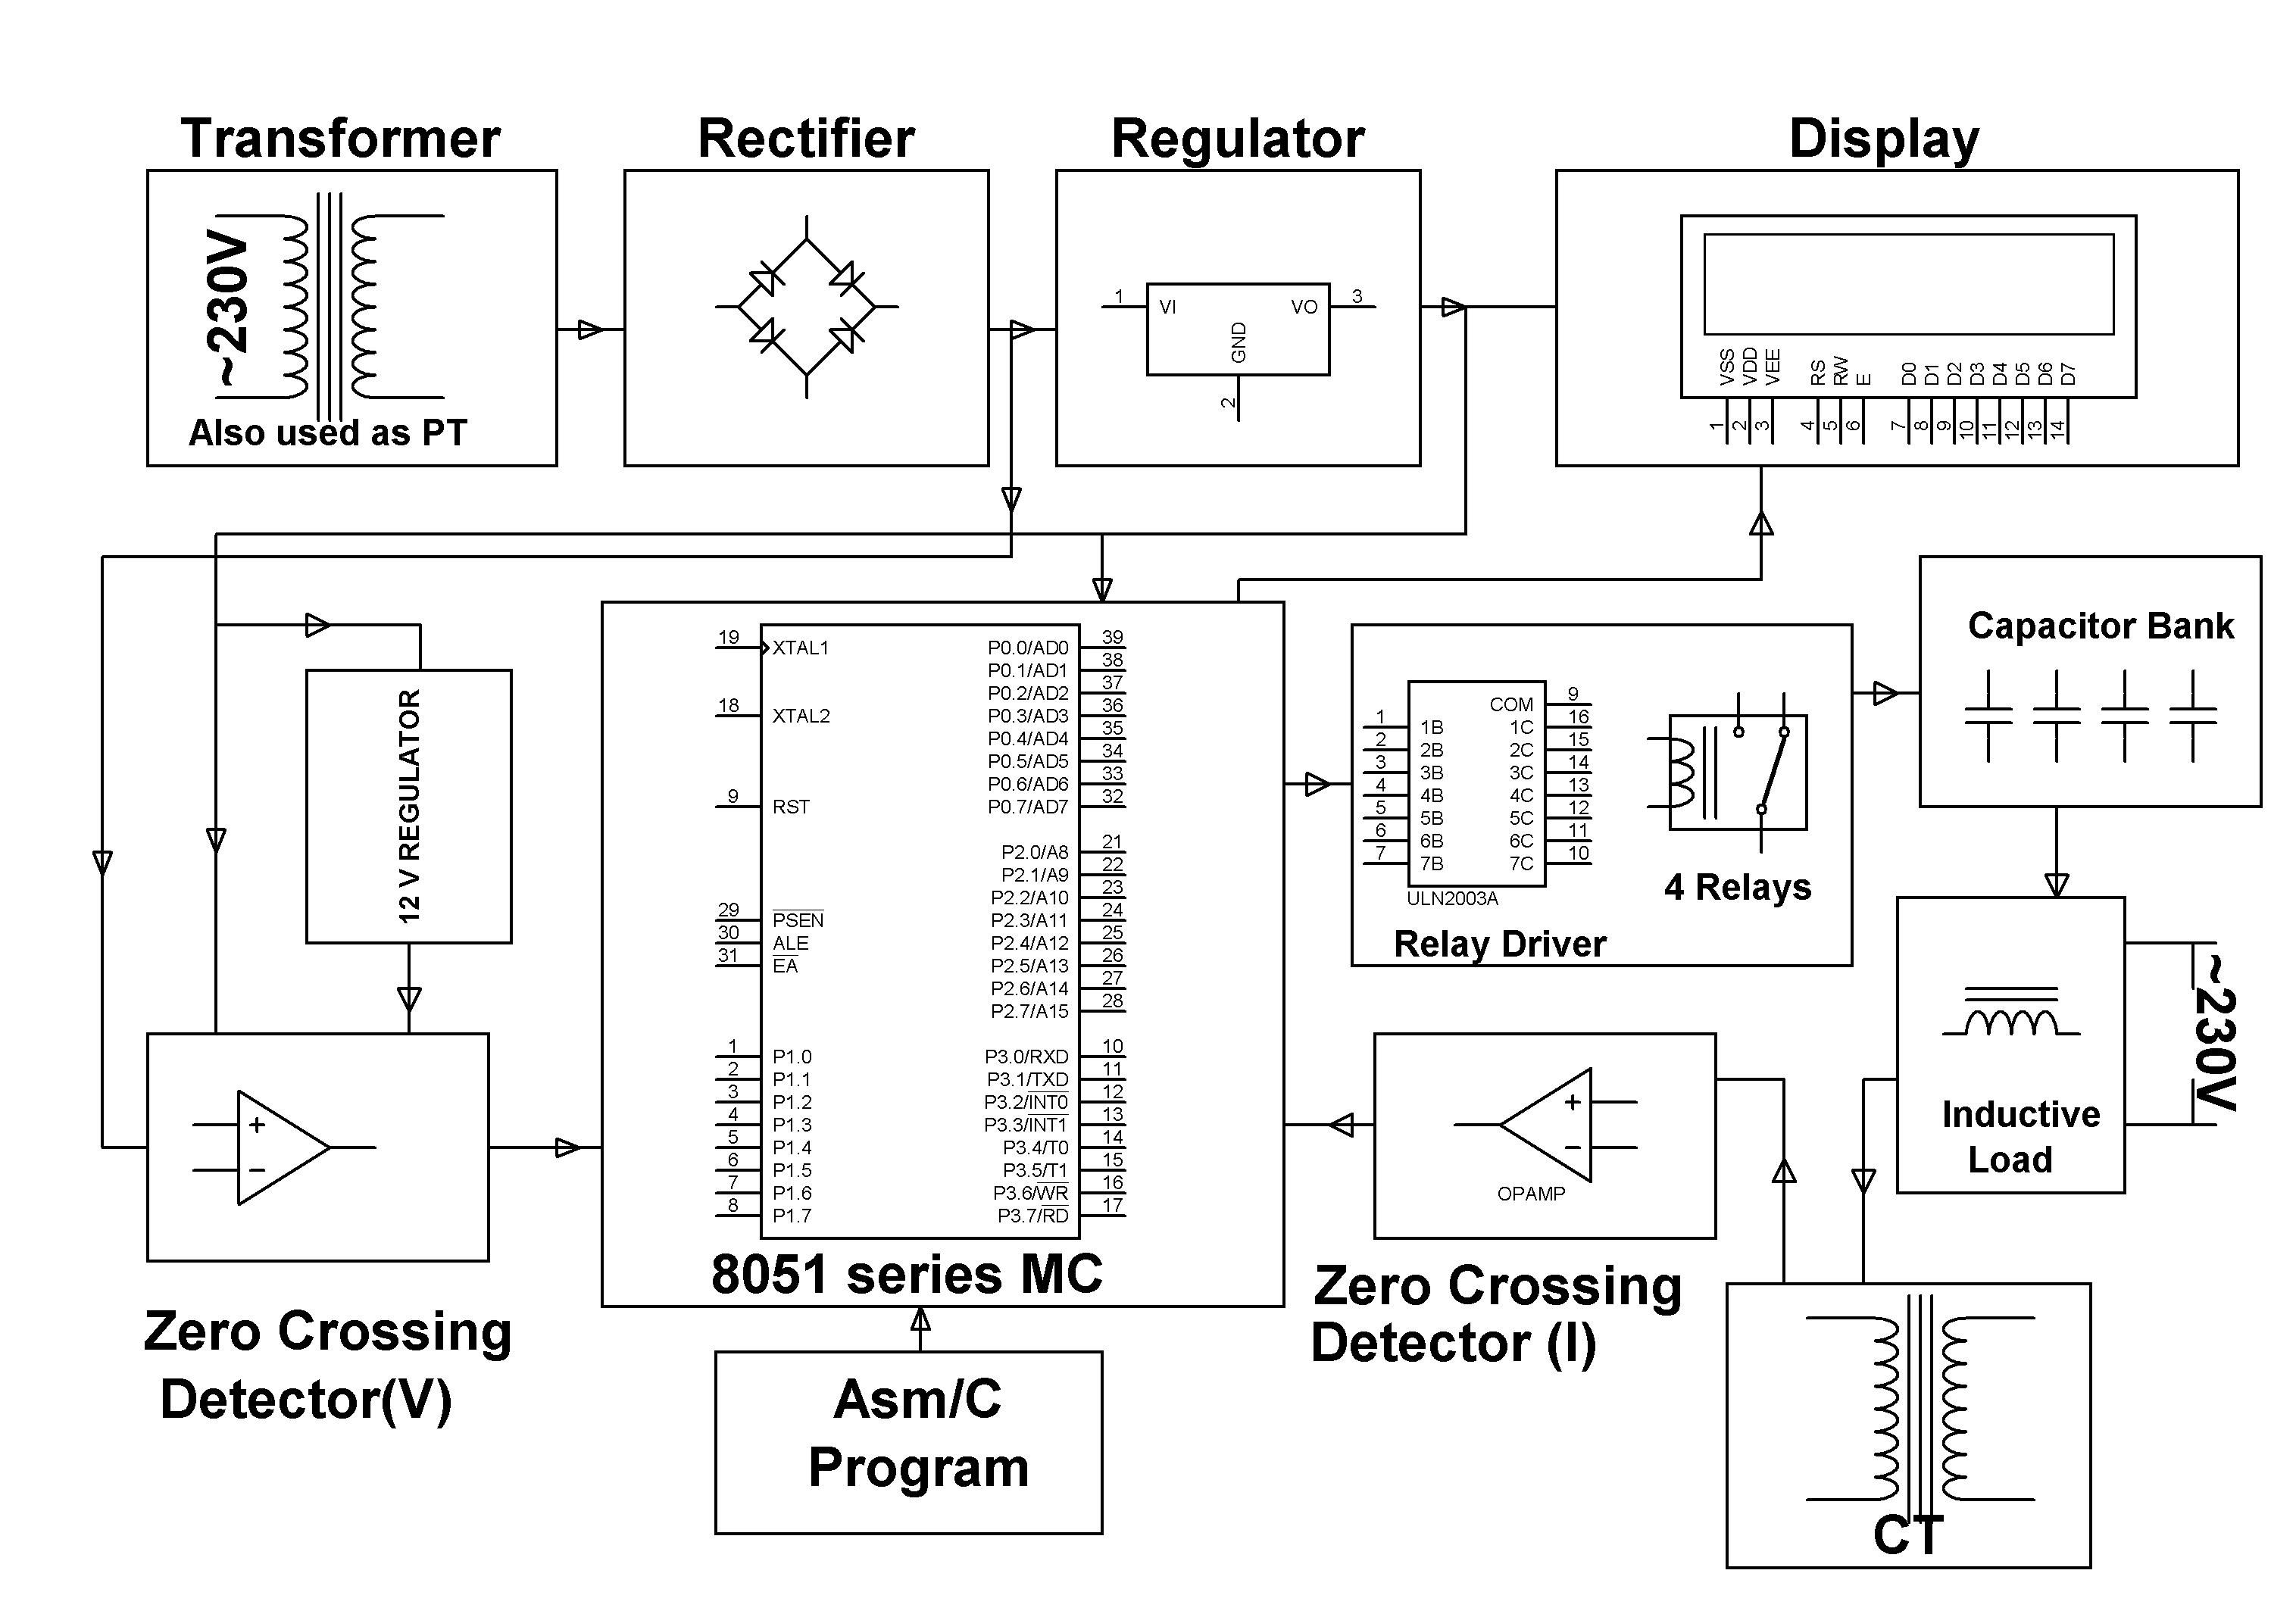 The Project Is Designed To Minimize Penalty For Industrial Units By Electronic Kit Ultrasonic Mosquito Repeller Circuit Projects Using Automatic Power Factor Correction Unit Defined As Ratio Of